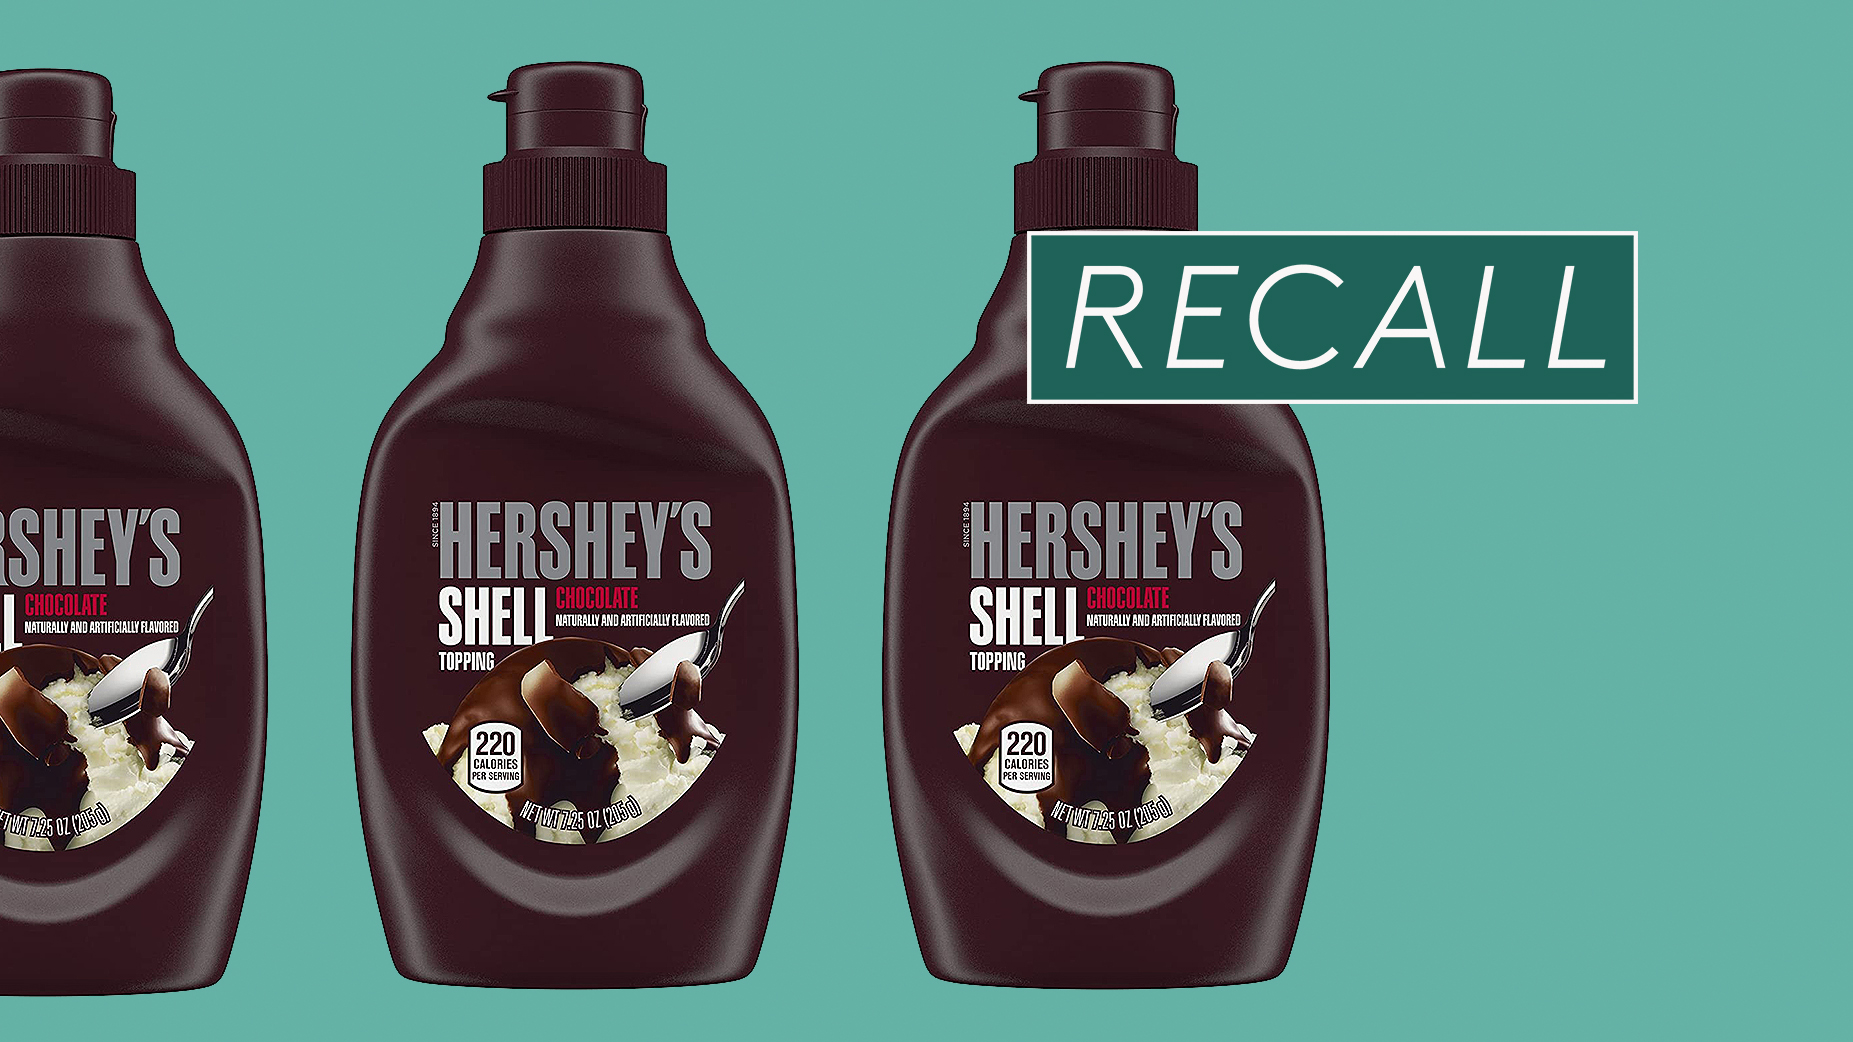 Hershey's Recalls Chocolate Topping After Bottles Were Accidentally Filled with Nuts